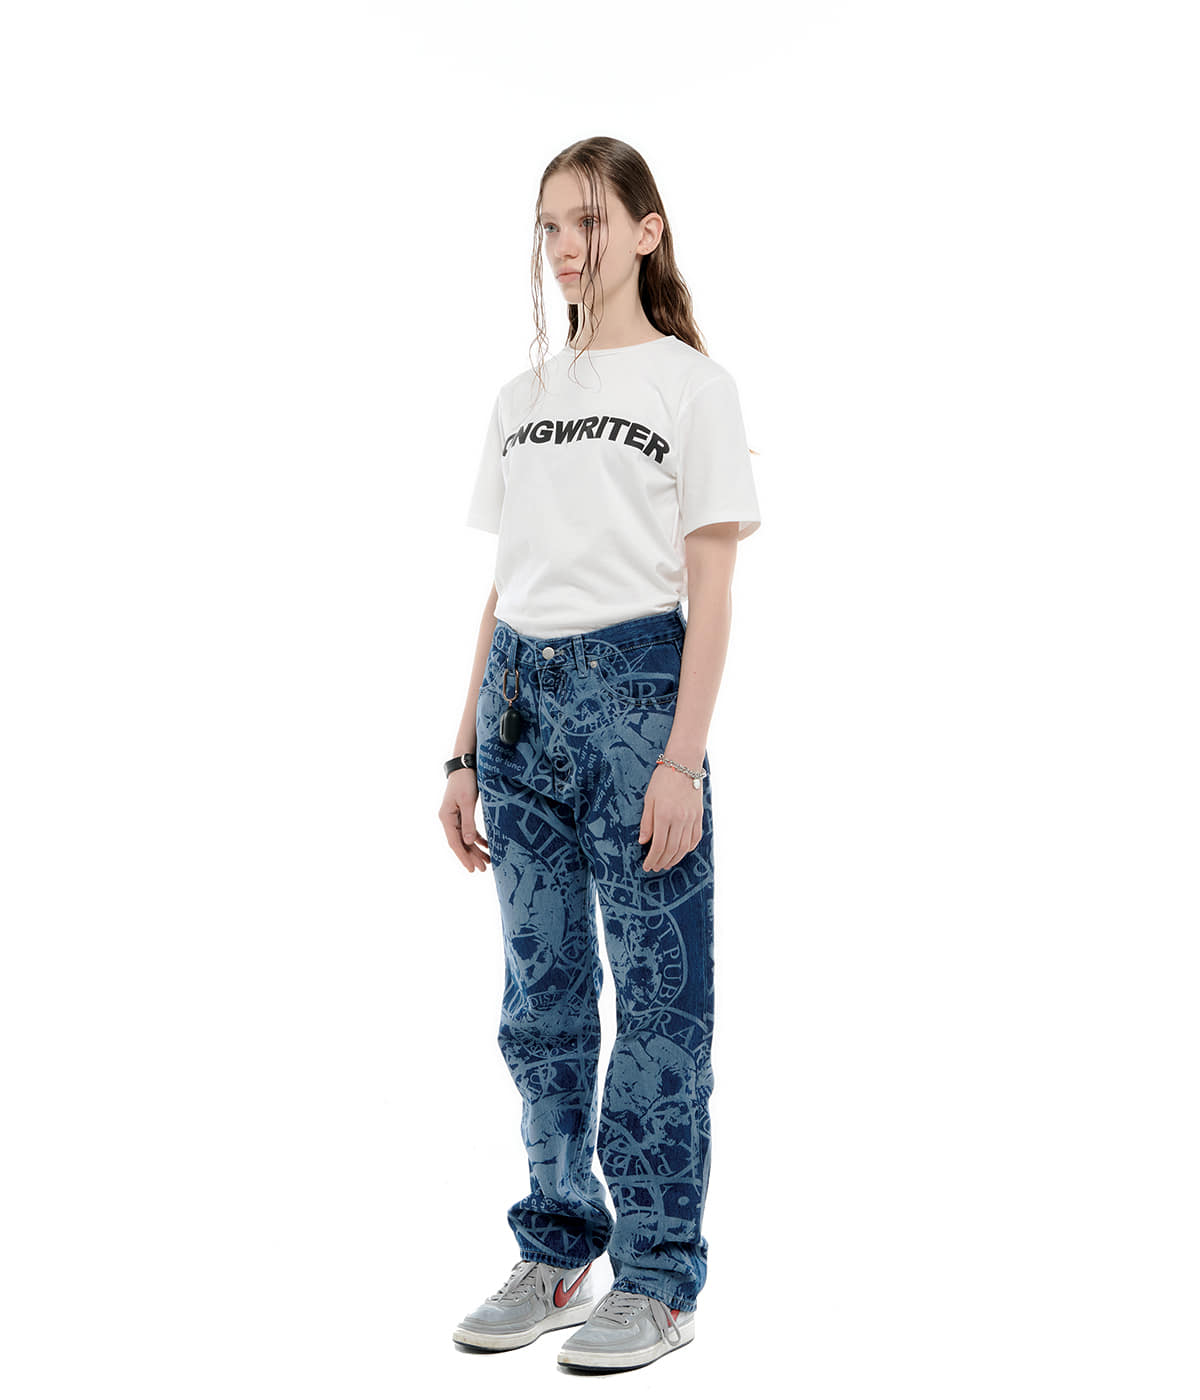 Laser Library Jeans (Deep blue)